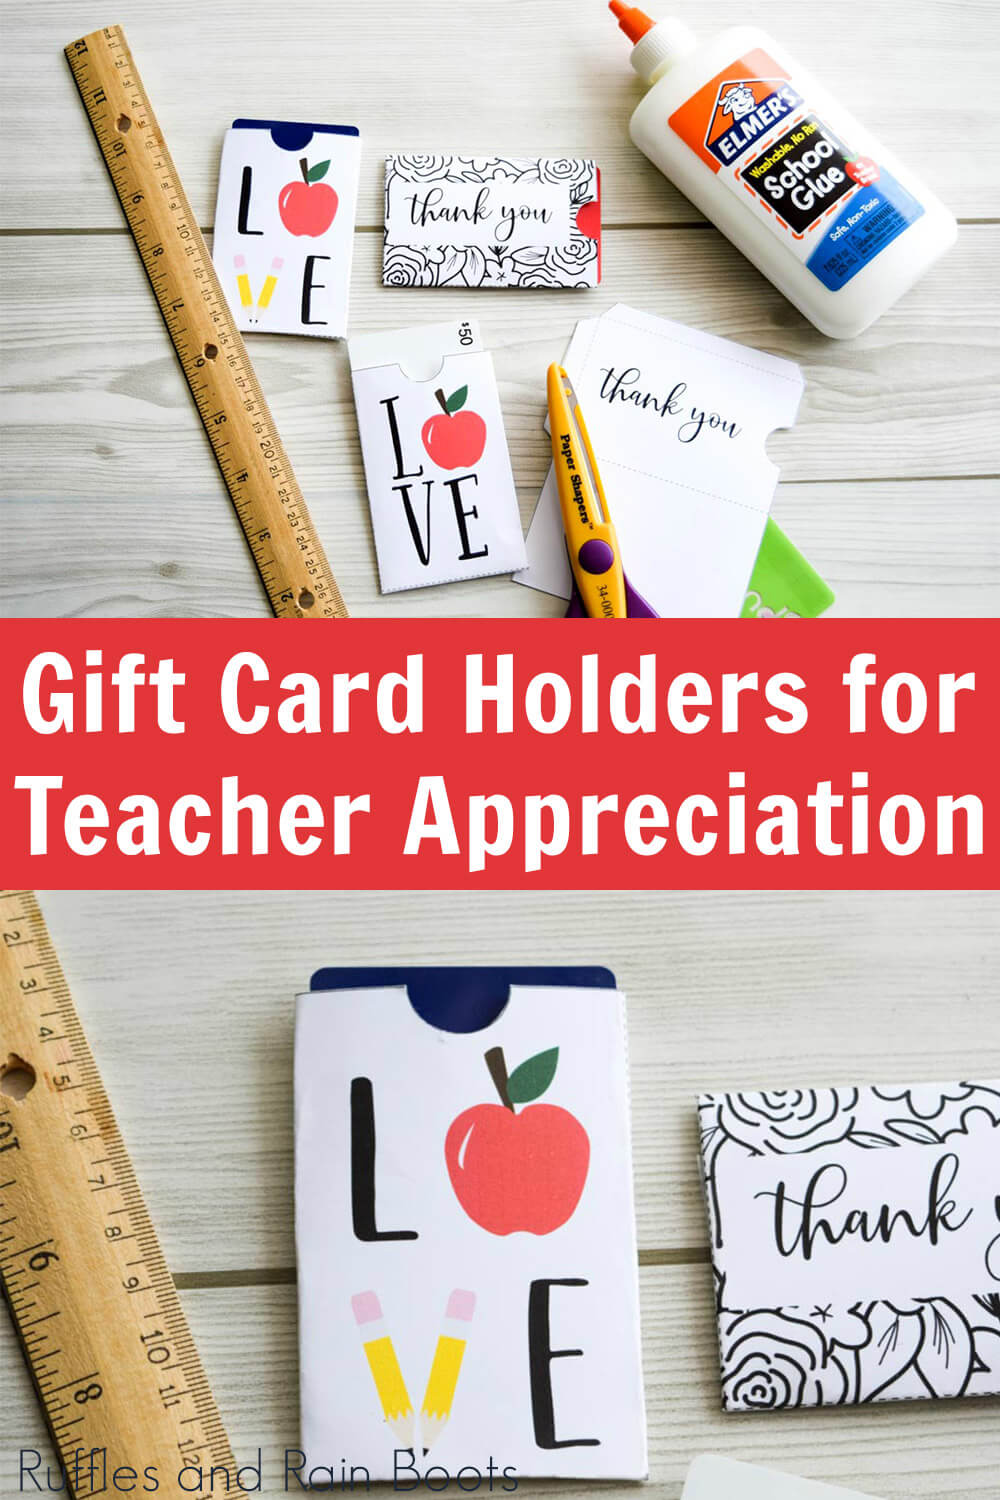 photo collage of gift card holder for teacher appreciation week on wood background